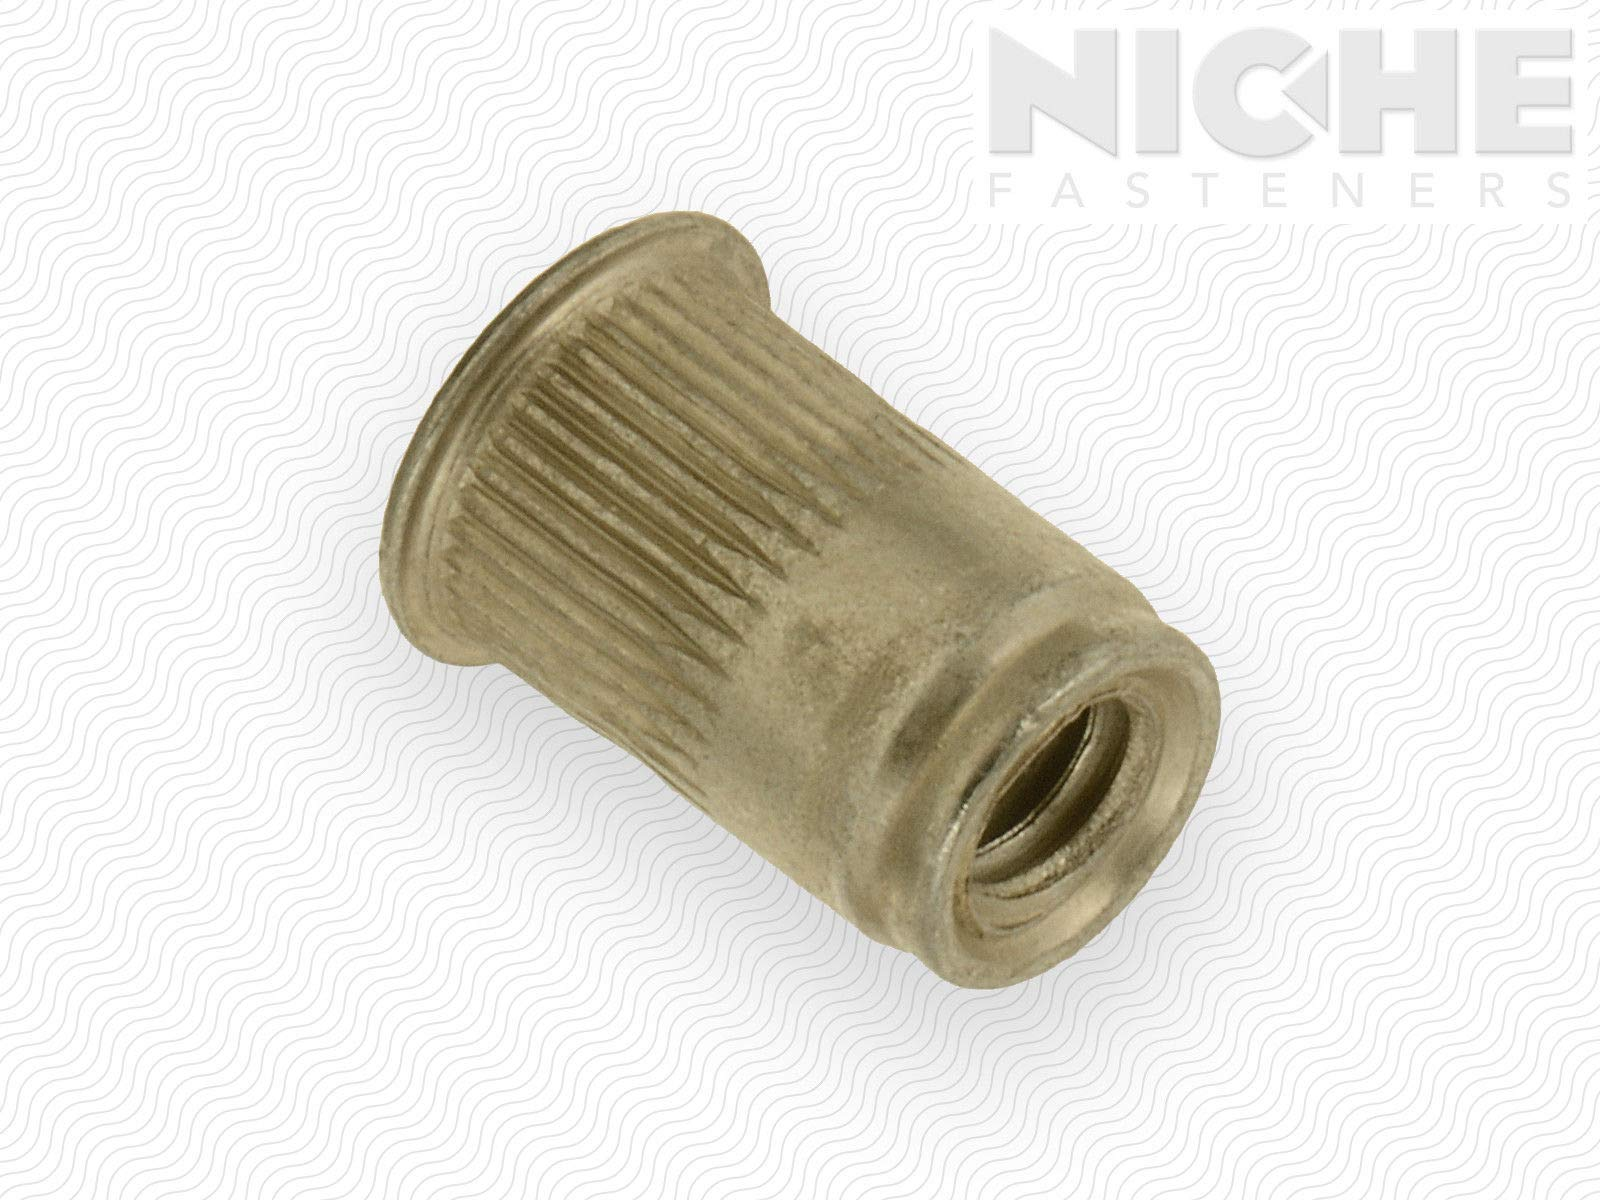 AVK Threaded Insert Knurled AK #8-32 x 80 ZY Triv Open End (225 Pieces)